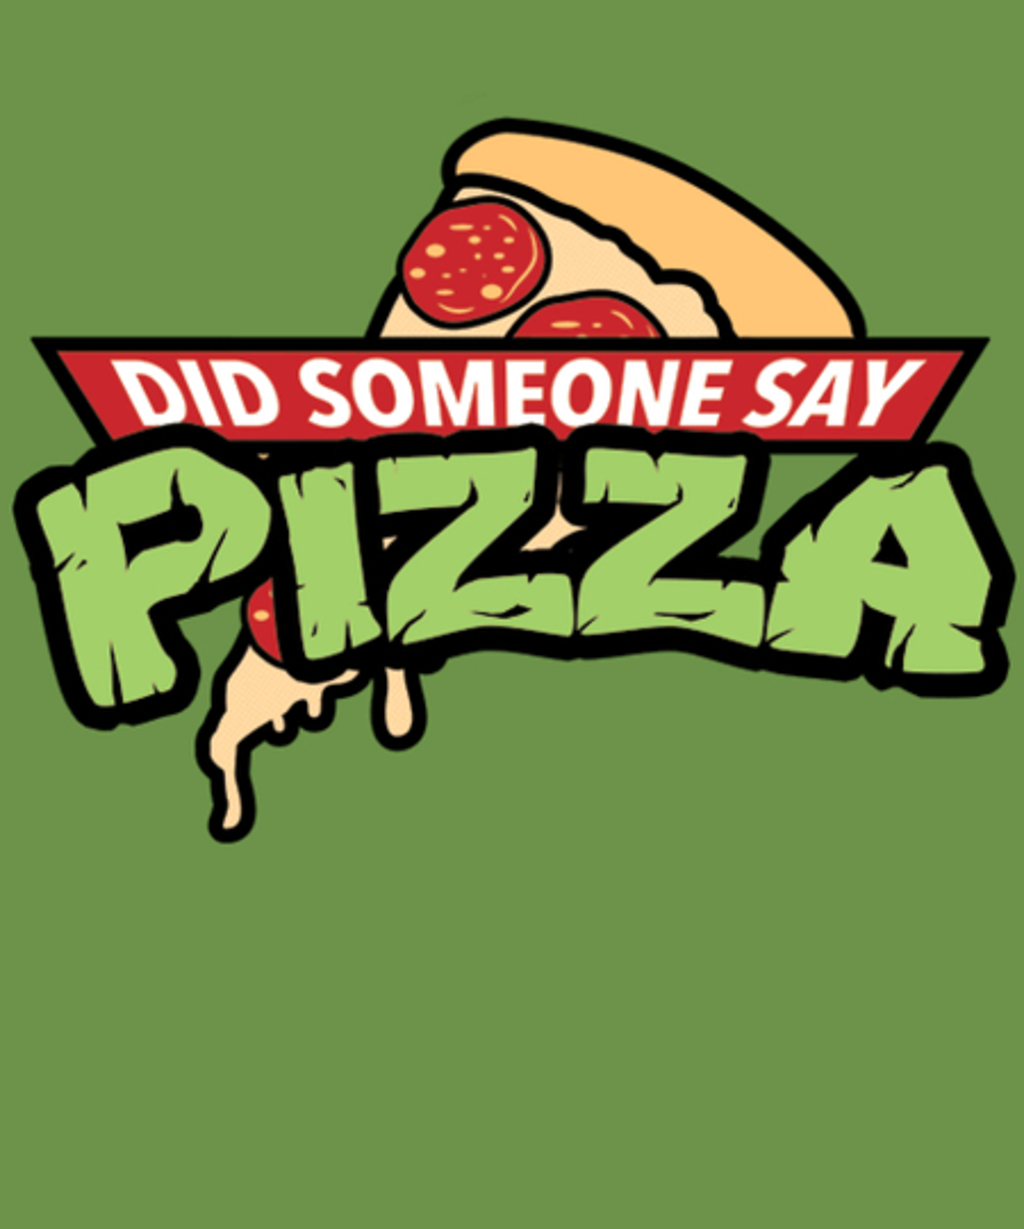 Qwertee: Did Someone Say Pizza?